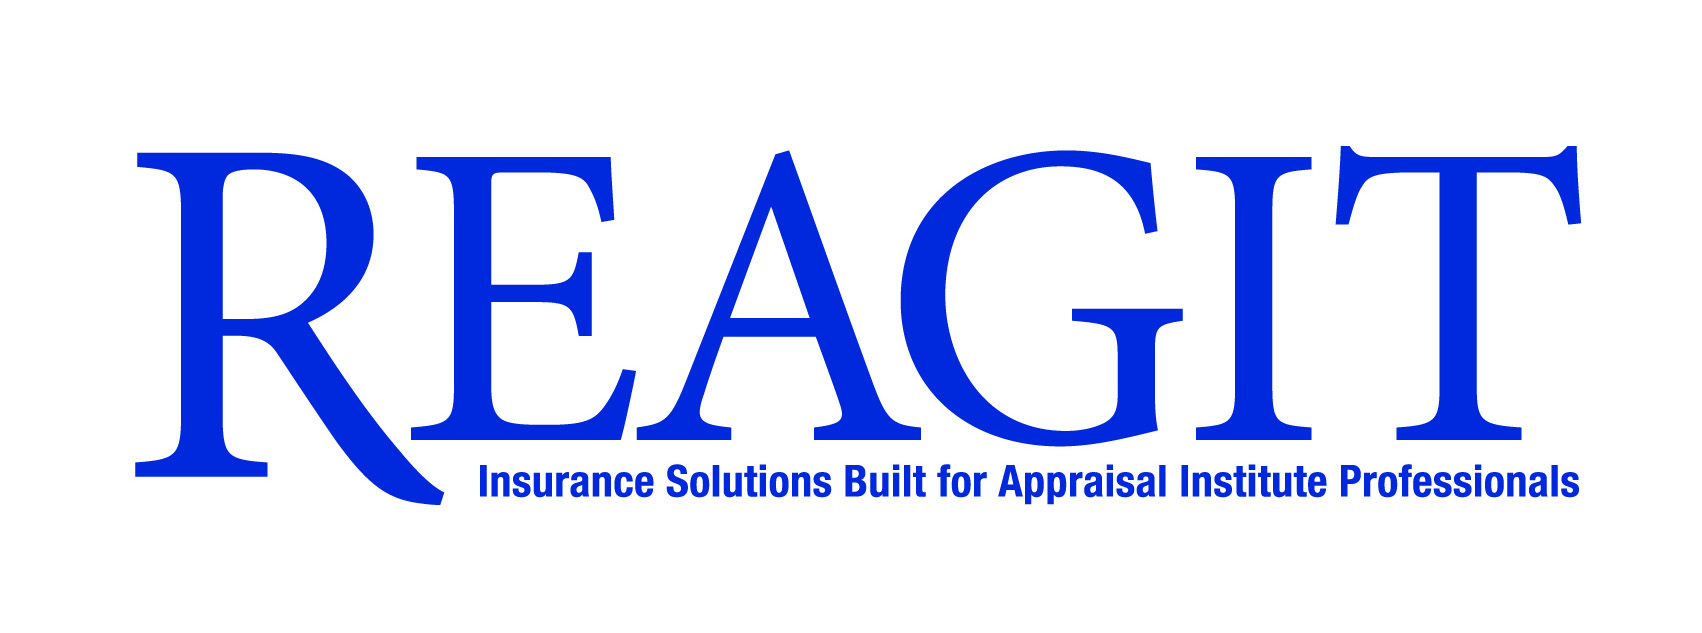 Reagit Insurance Solutions Built for Appraisal Institute Professionals